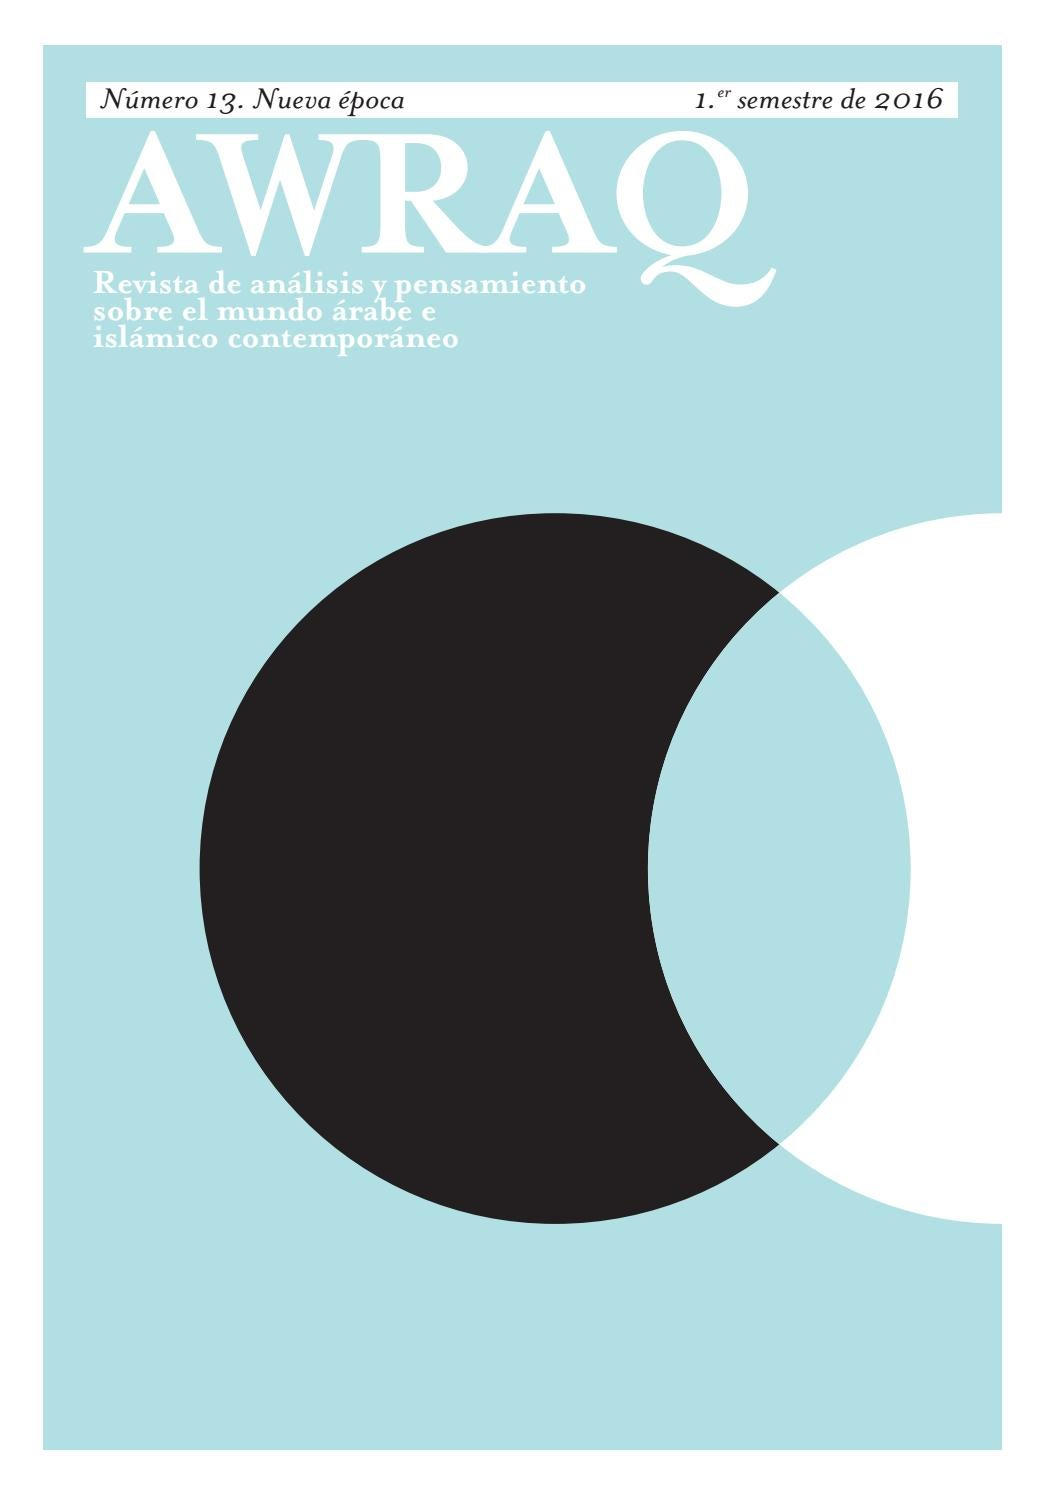 Revista Awraq nº13 by Casa Árabe - issuu